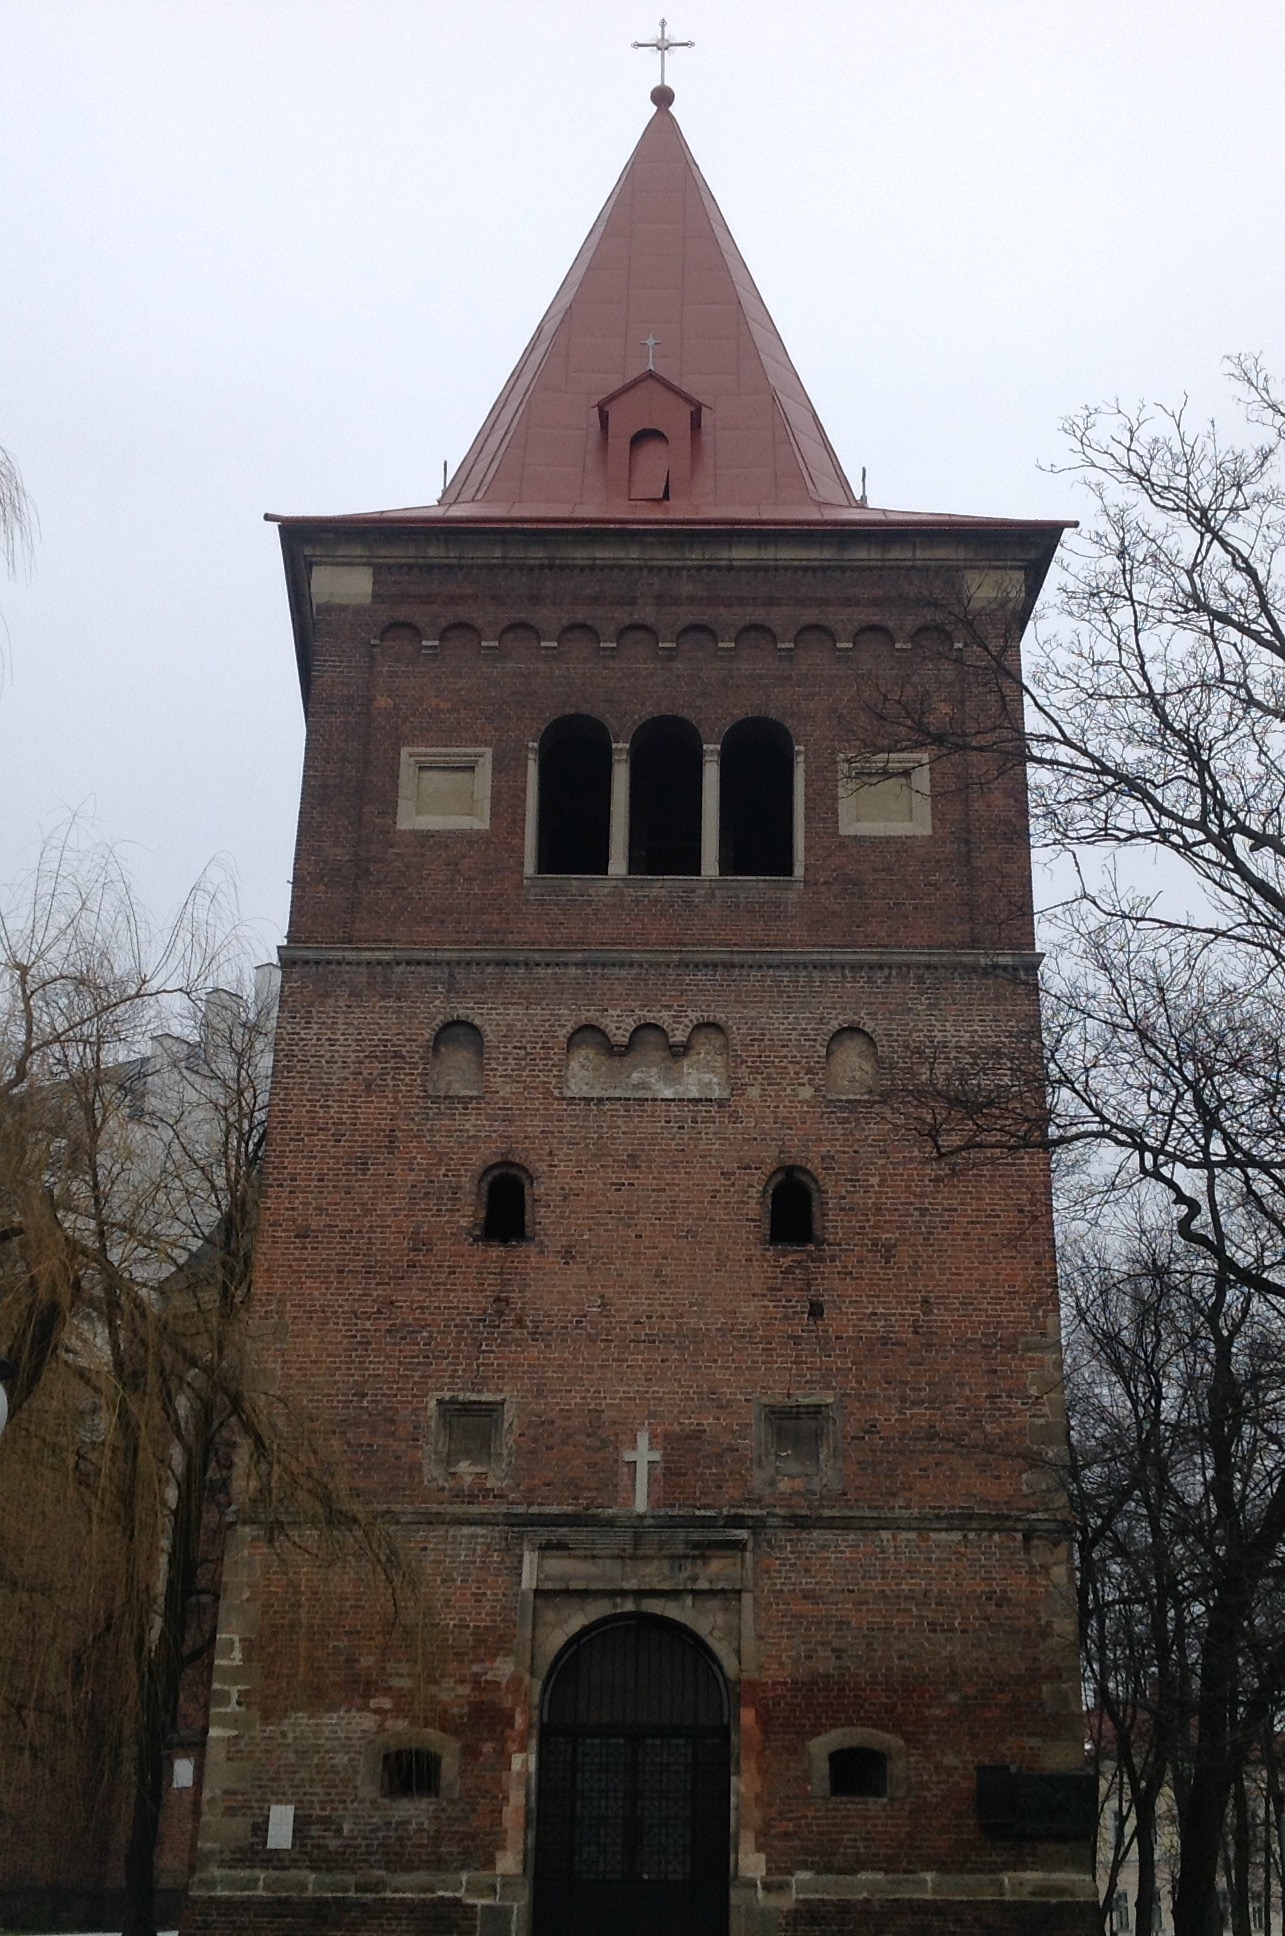 Kievan Rus times fortification tower, 12th cen